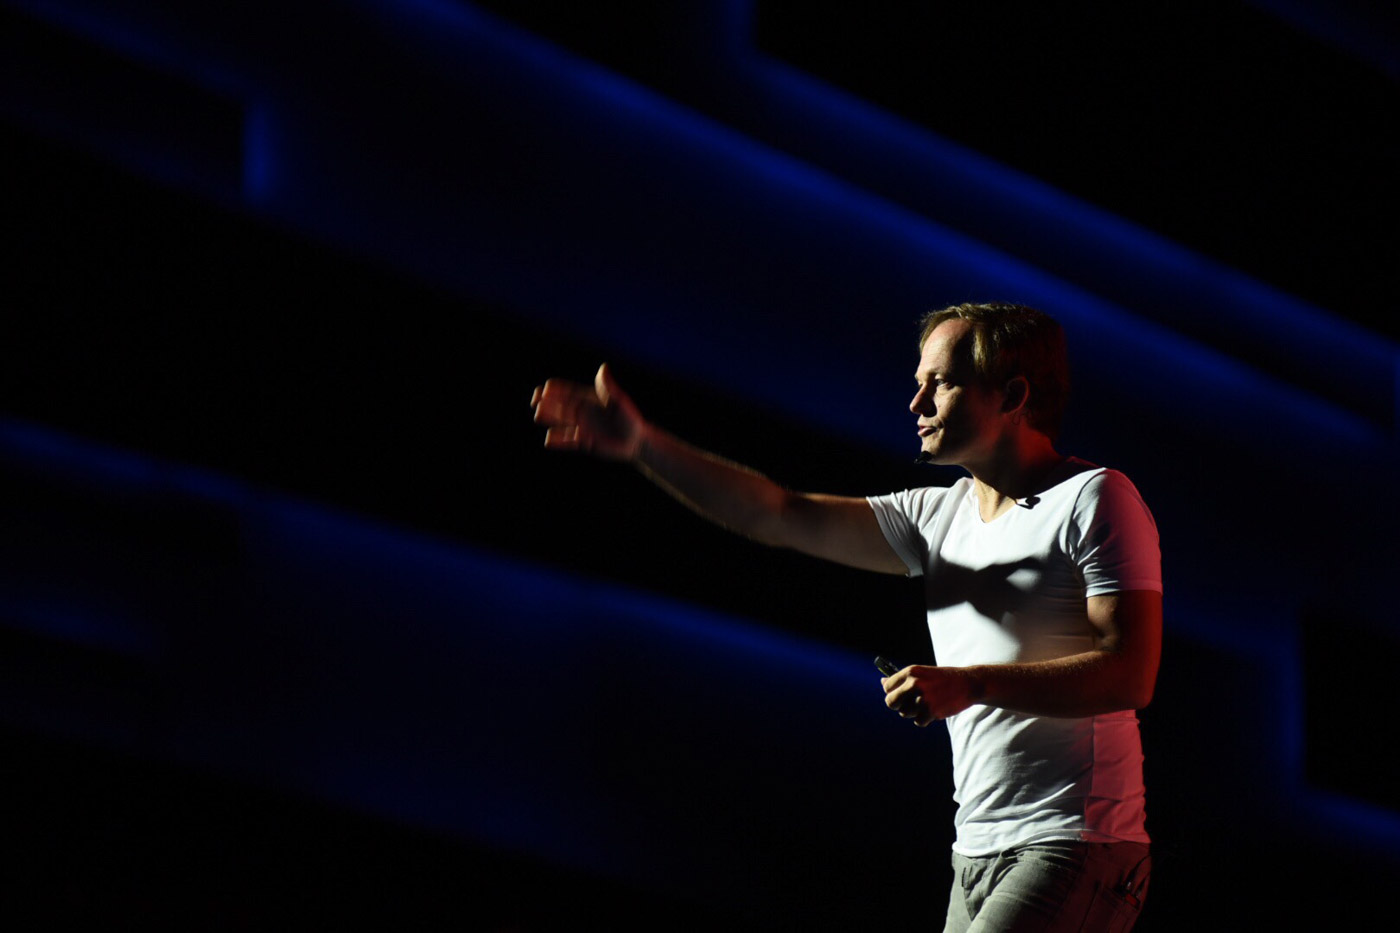 """FORWARD THINKING. Yuri Van Geest, the co-author of """" Exponential Organizations"""" discuees the lessons from his book and the coming singularity to kick off #ThinkPH 2016 on July 21. Photo by Martin San Diego/Rappler"""